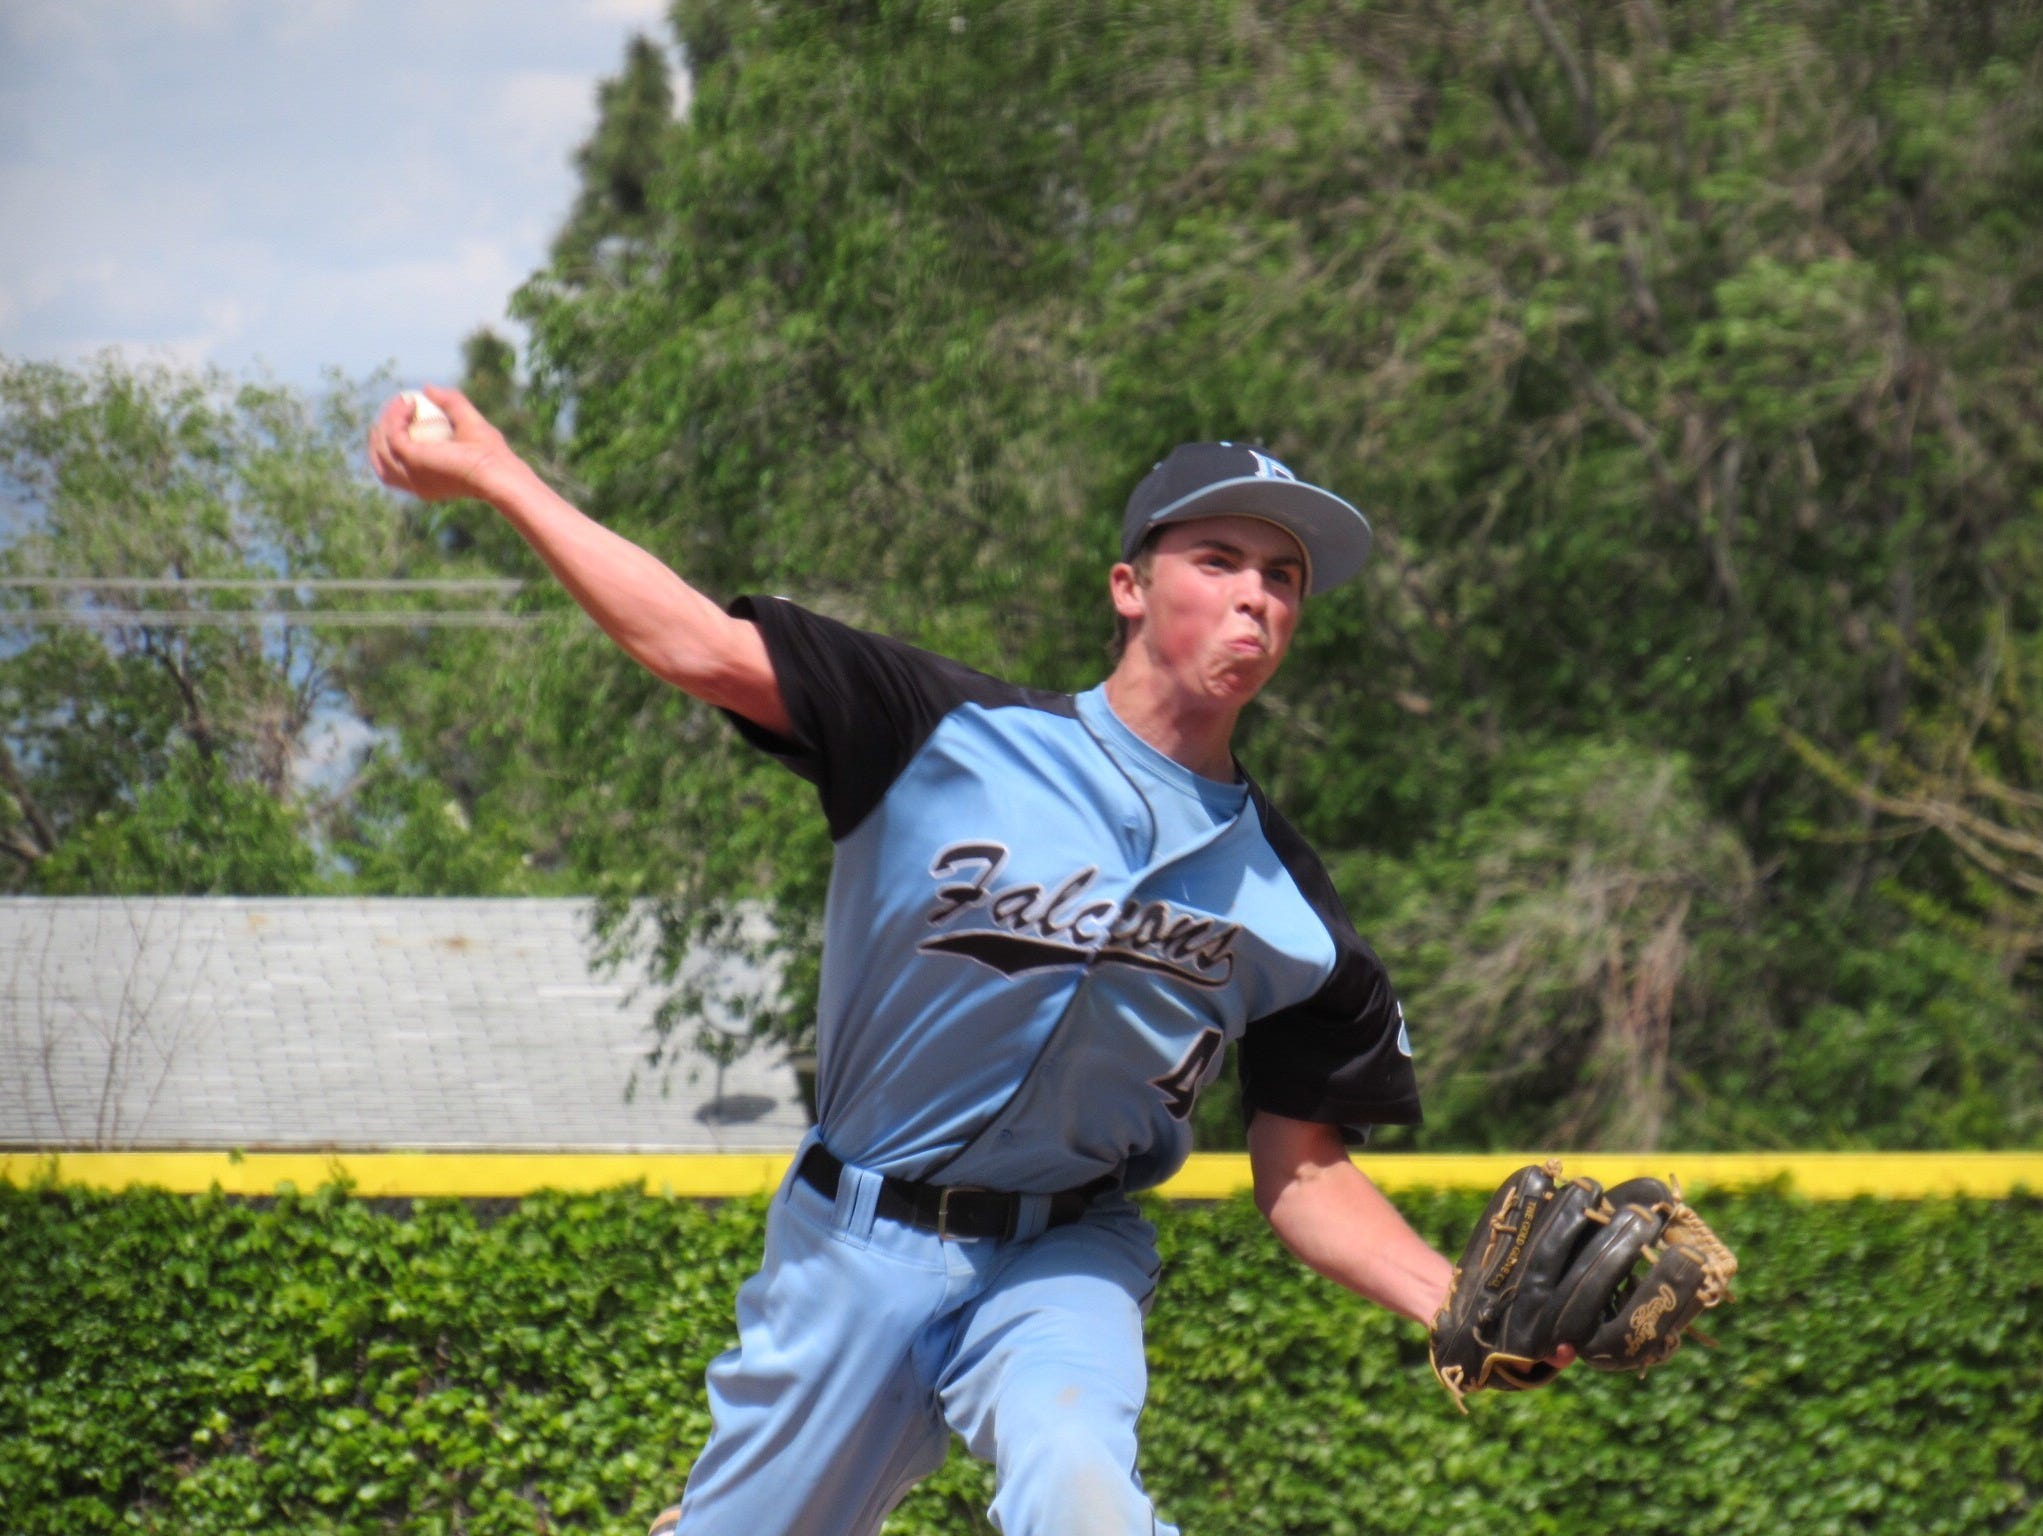 Cadyn Clark pitches in Canyon View's 4-3 win over Richfield.